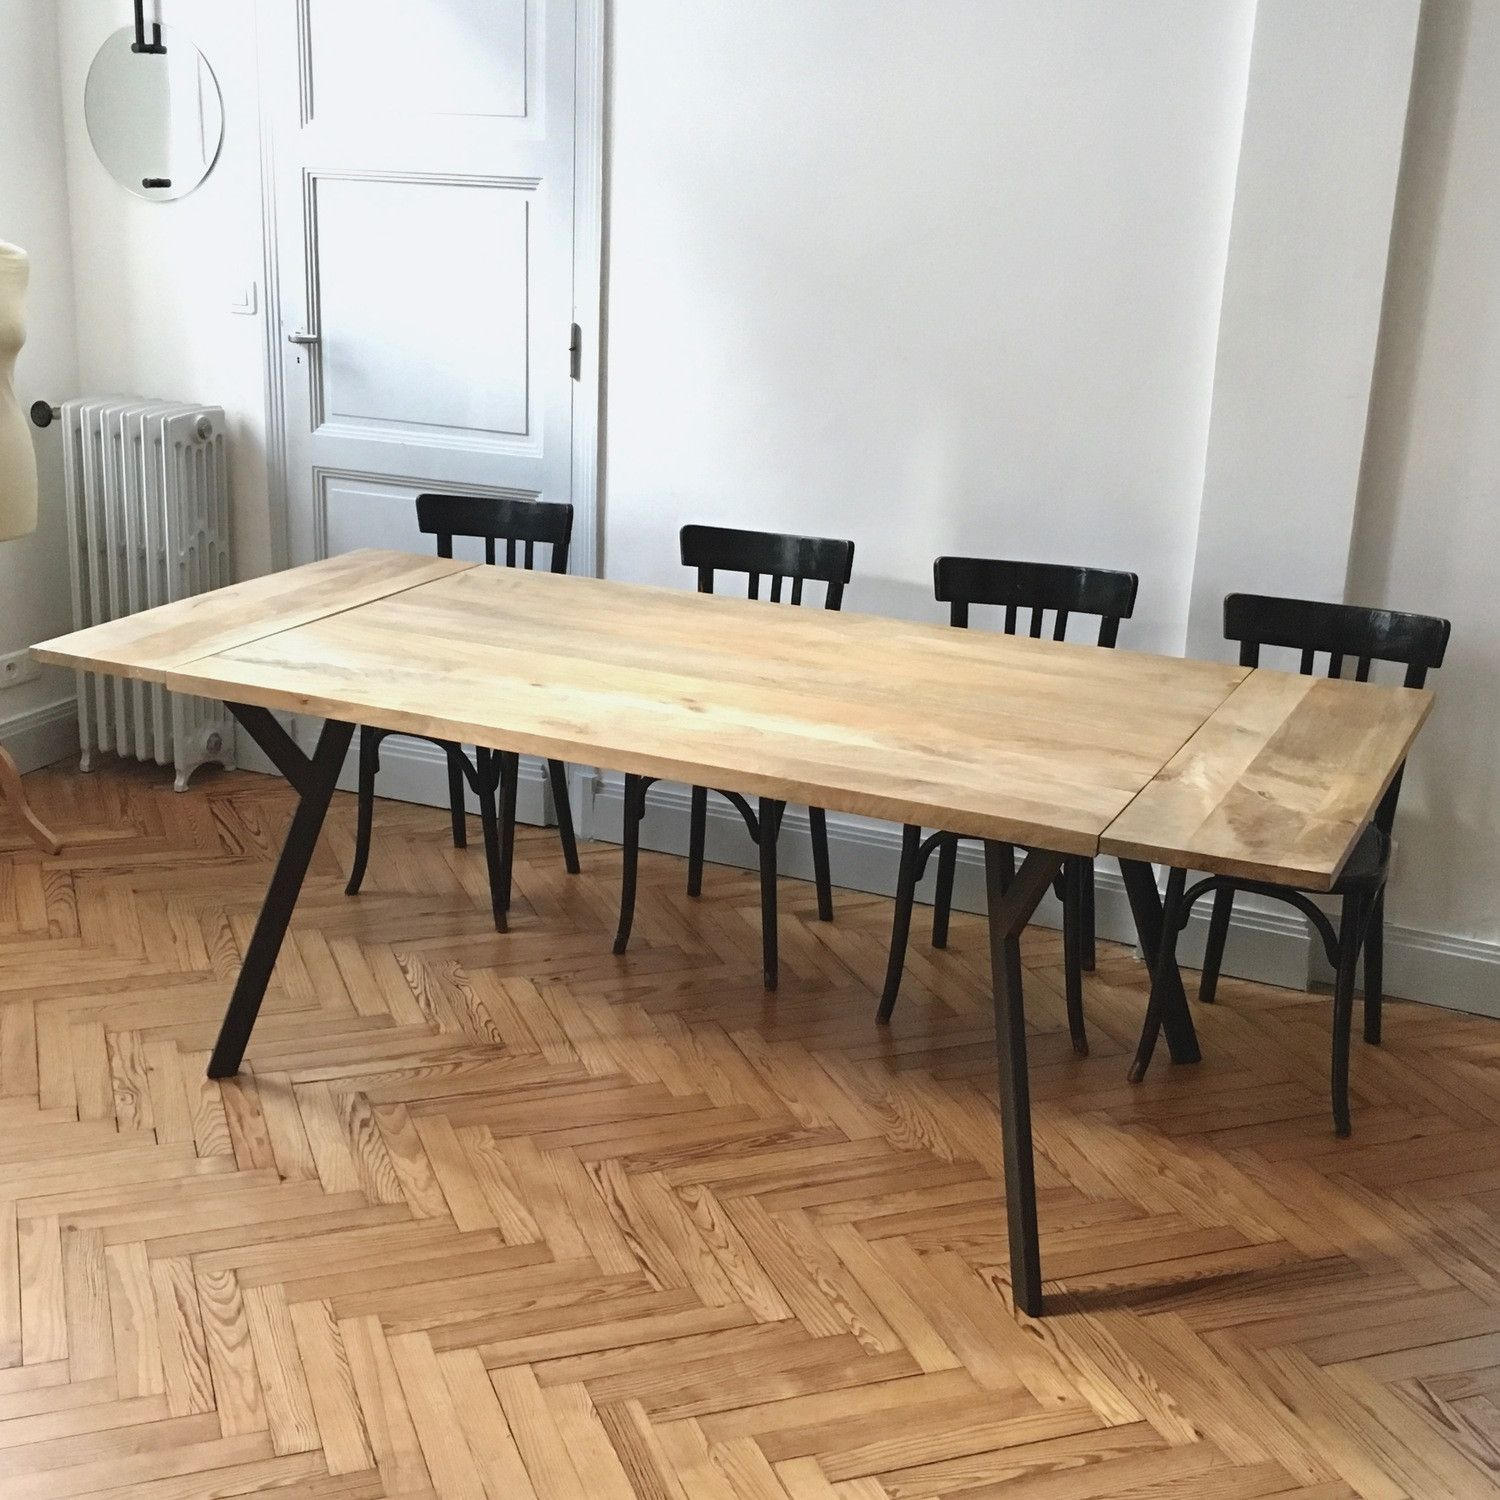 Table A Rallonge En 2020 Table A Rallonge Table Extensible Bois Table Repas